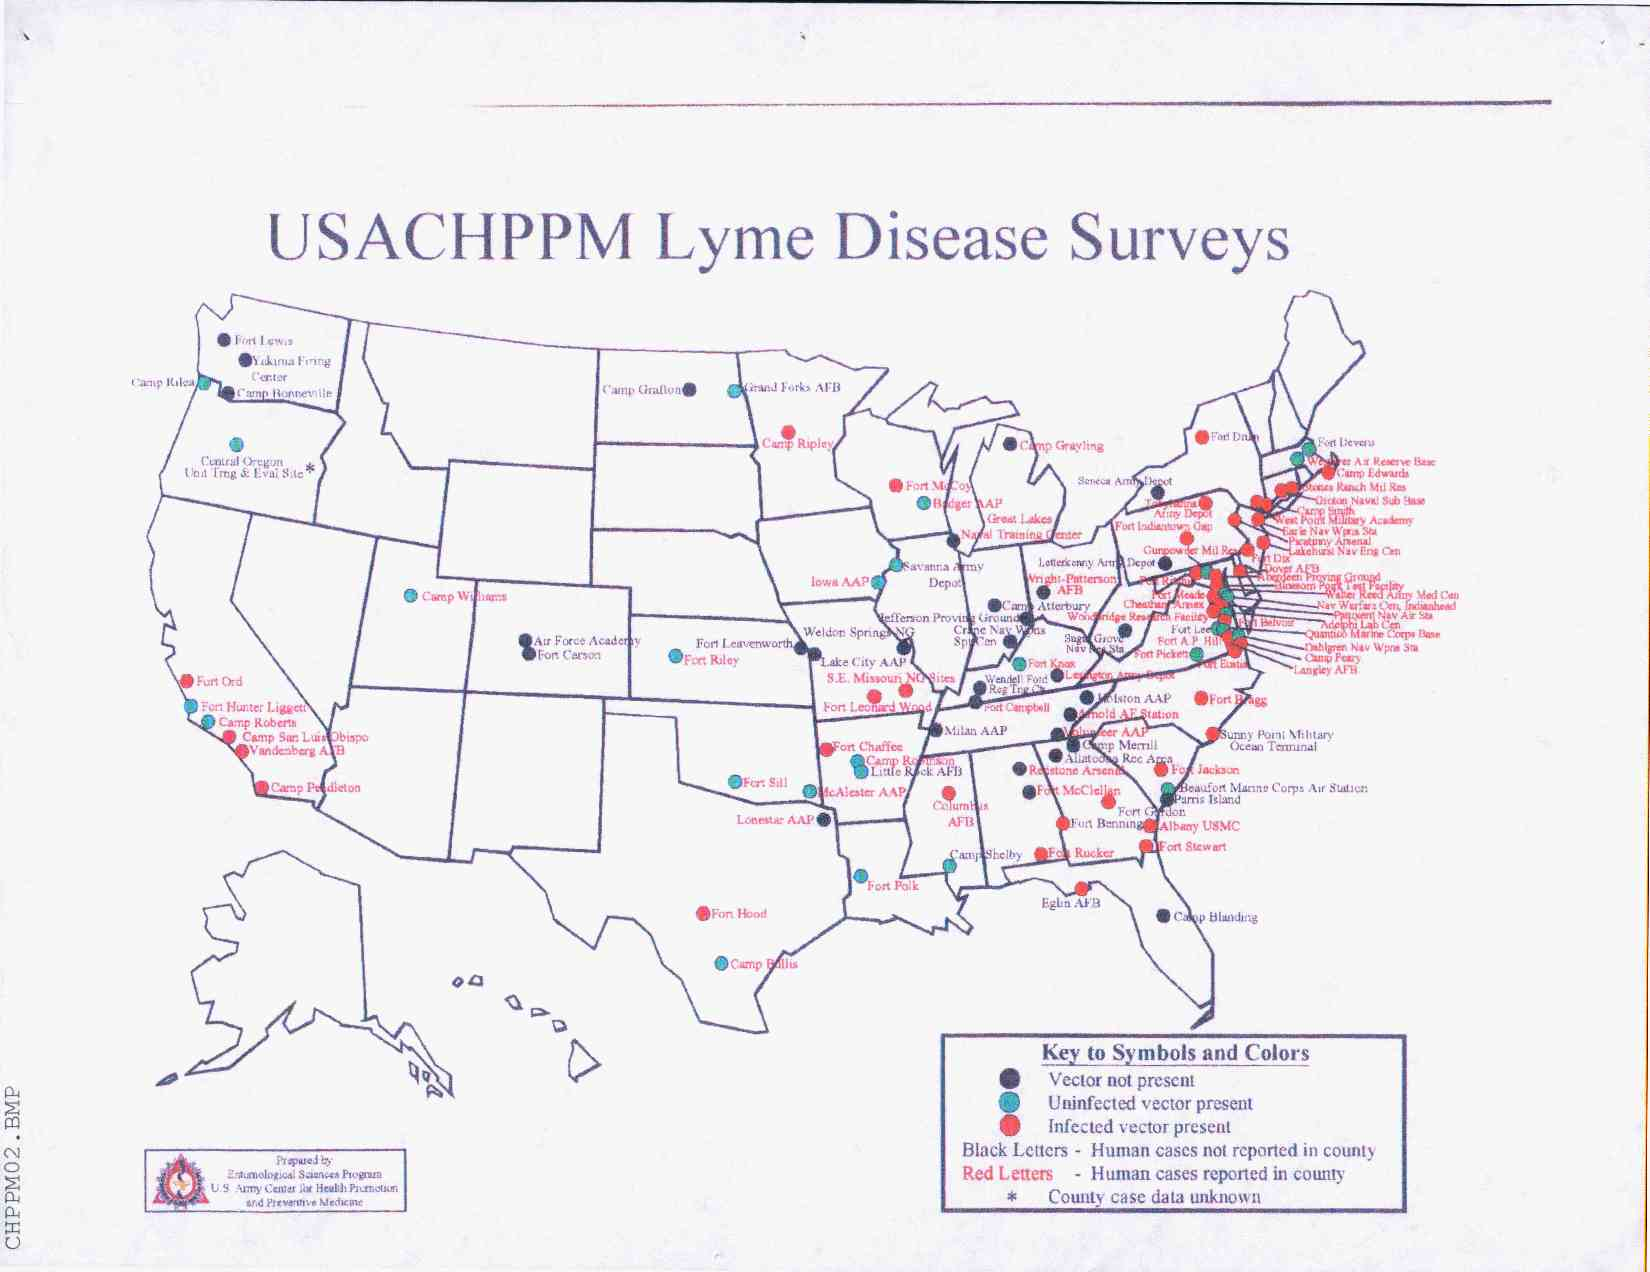 USACHPPM Lyme Disease Surveys